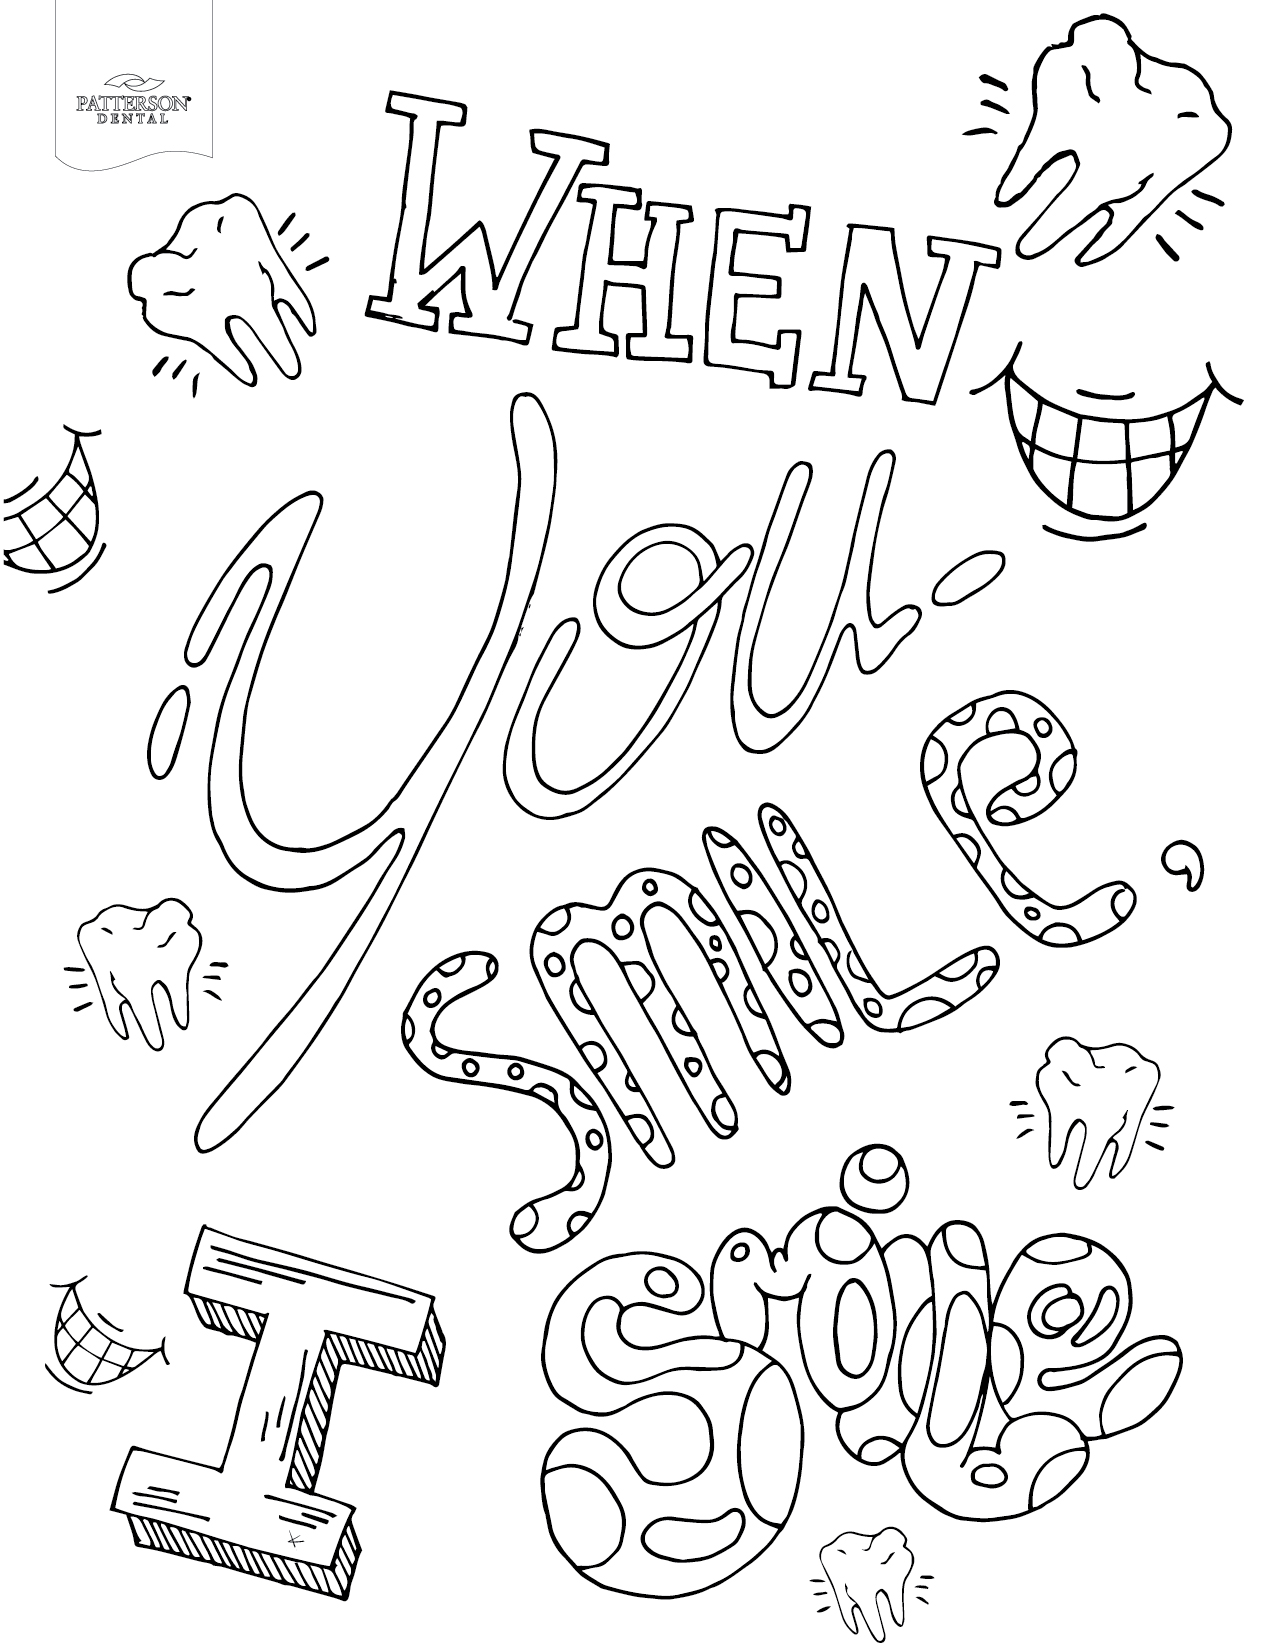 When you smile I smile coloring page from Patterson Dental